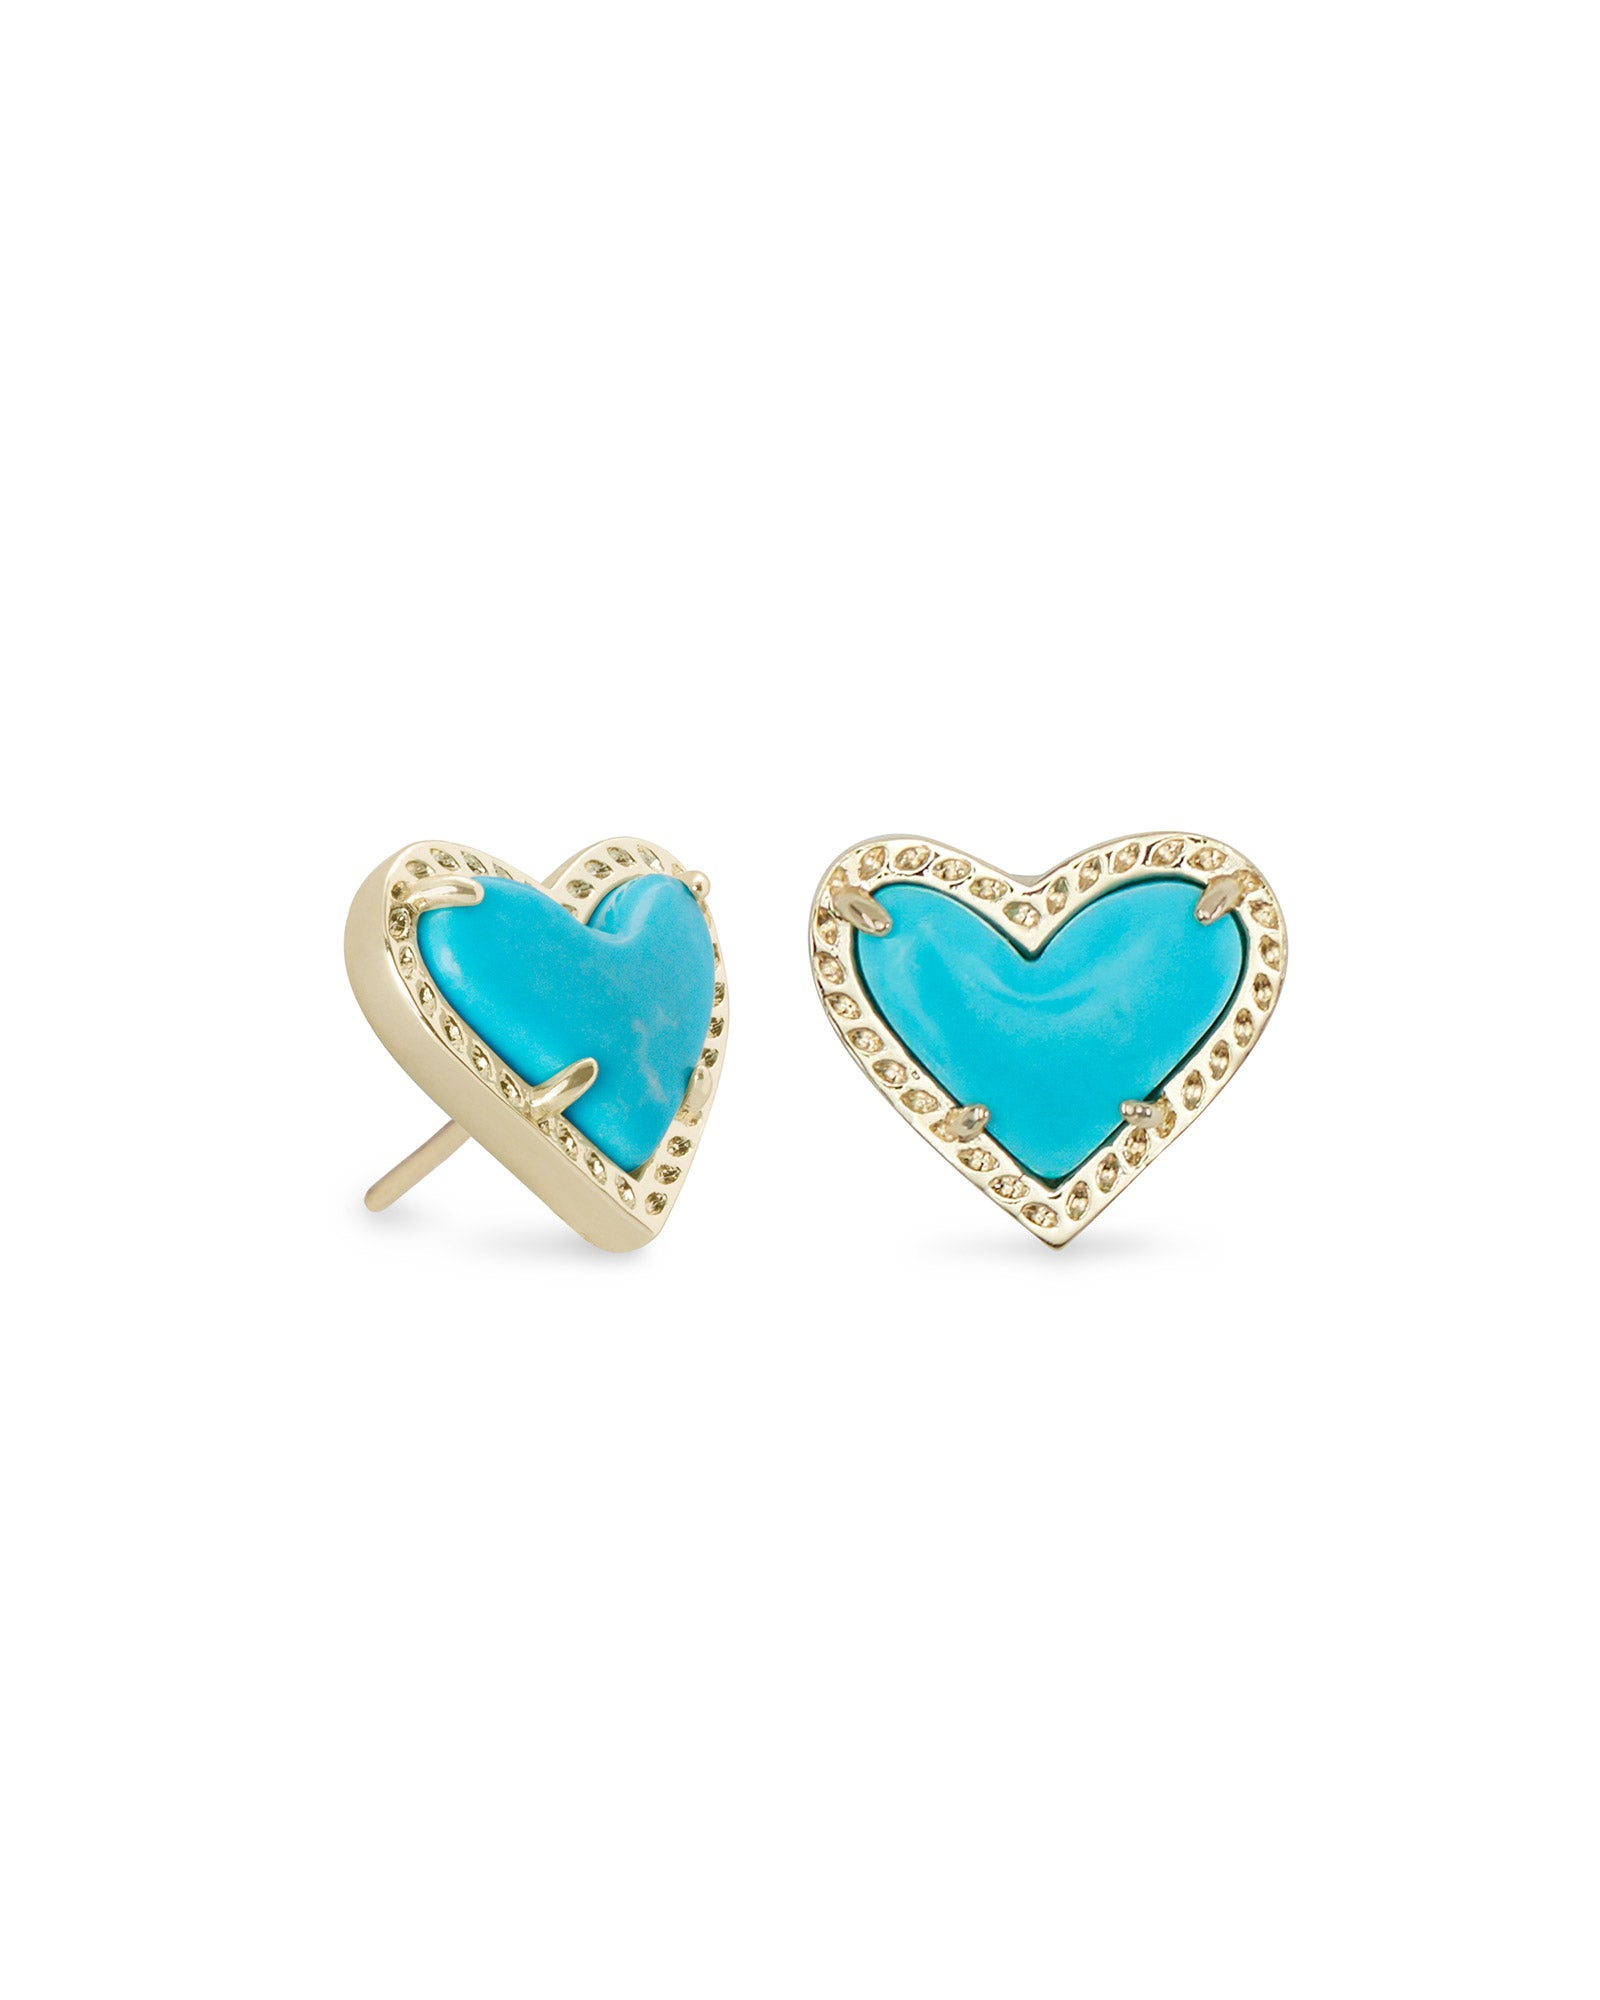 Ari Heart Stud Earring in Gold